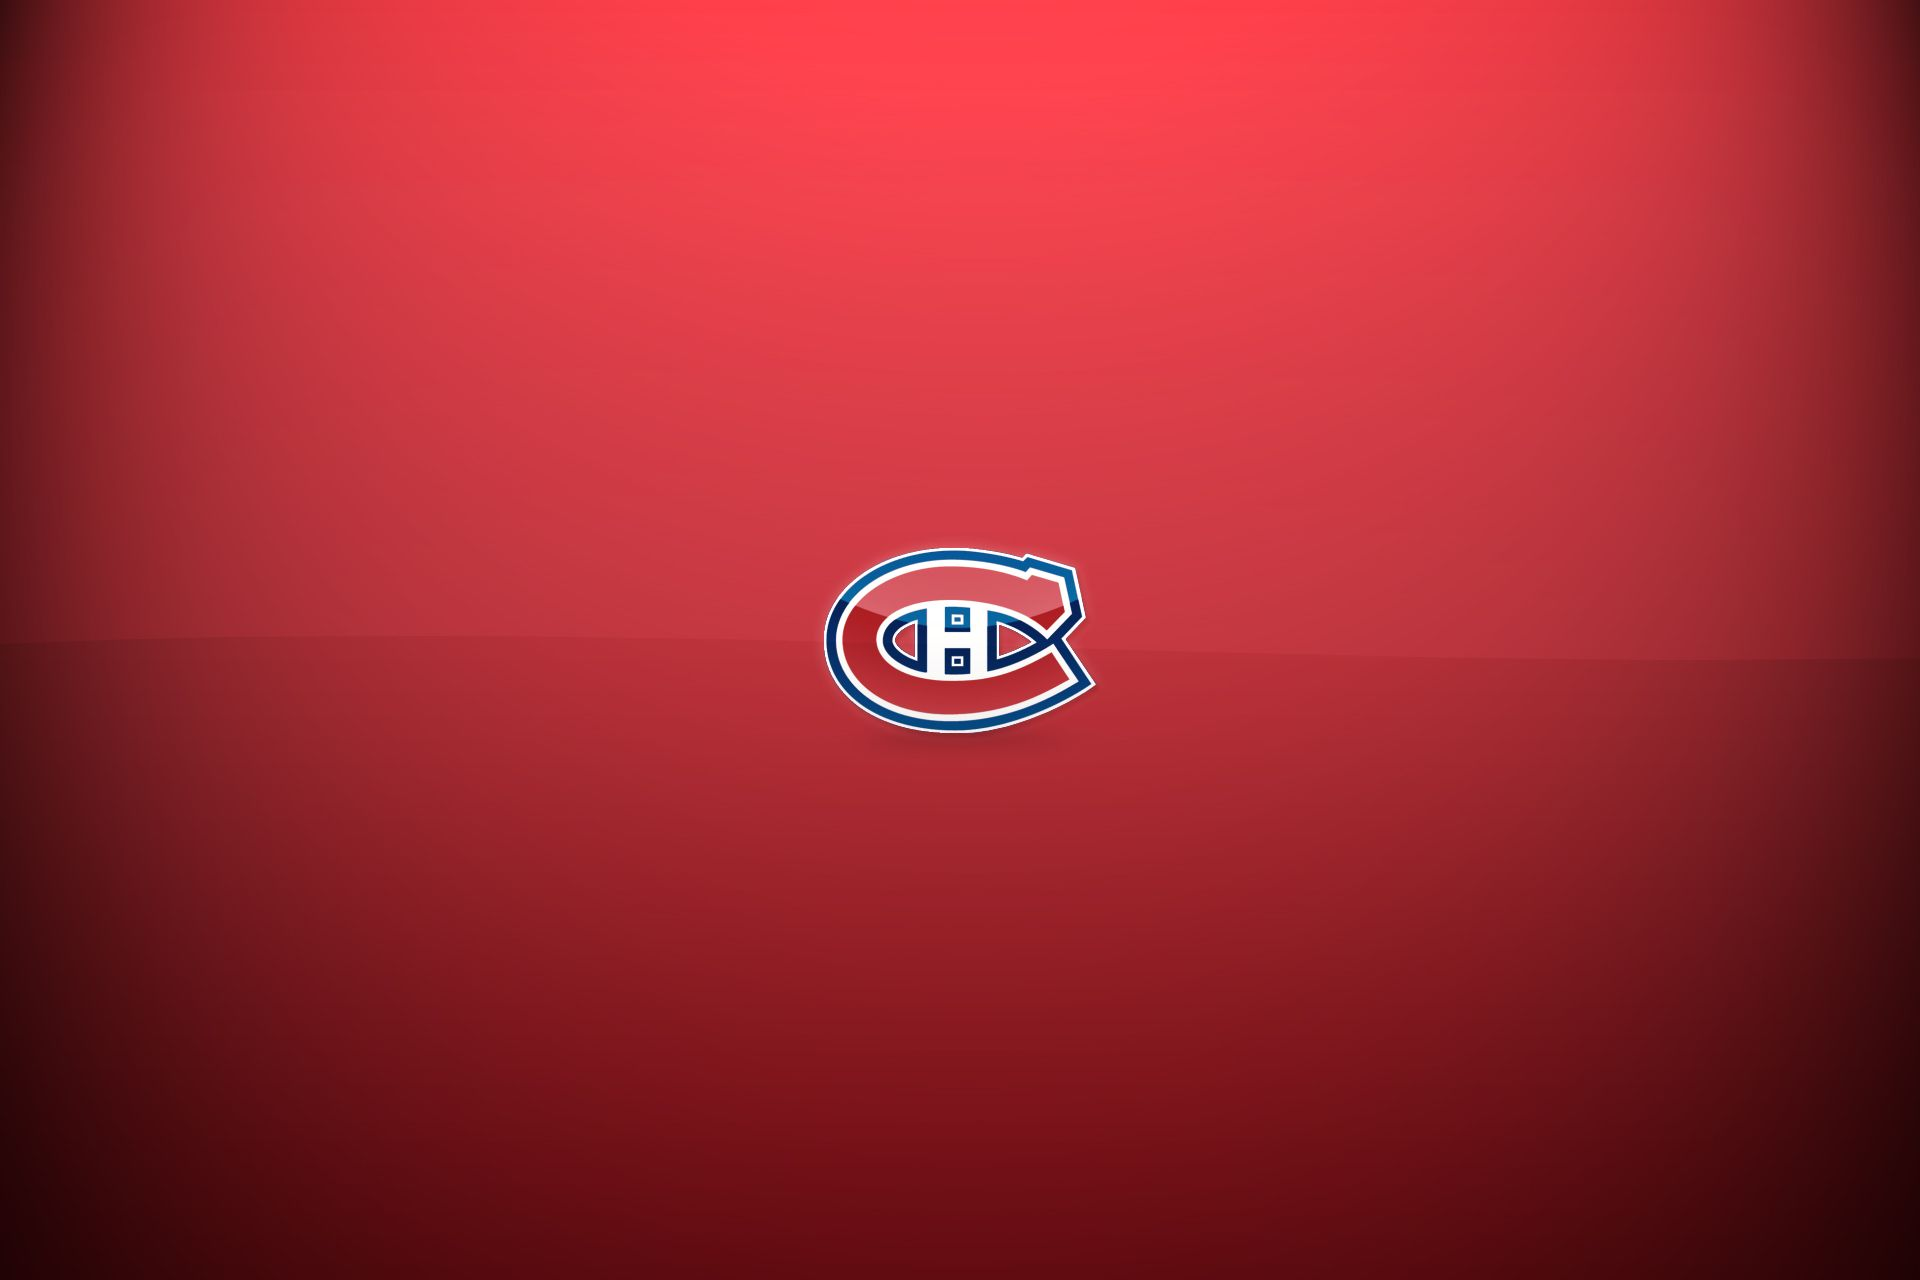 Montreal Canadiens Wallpapers Top Free Montreal Canadiens Backgrounds Wallpaperaccess